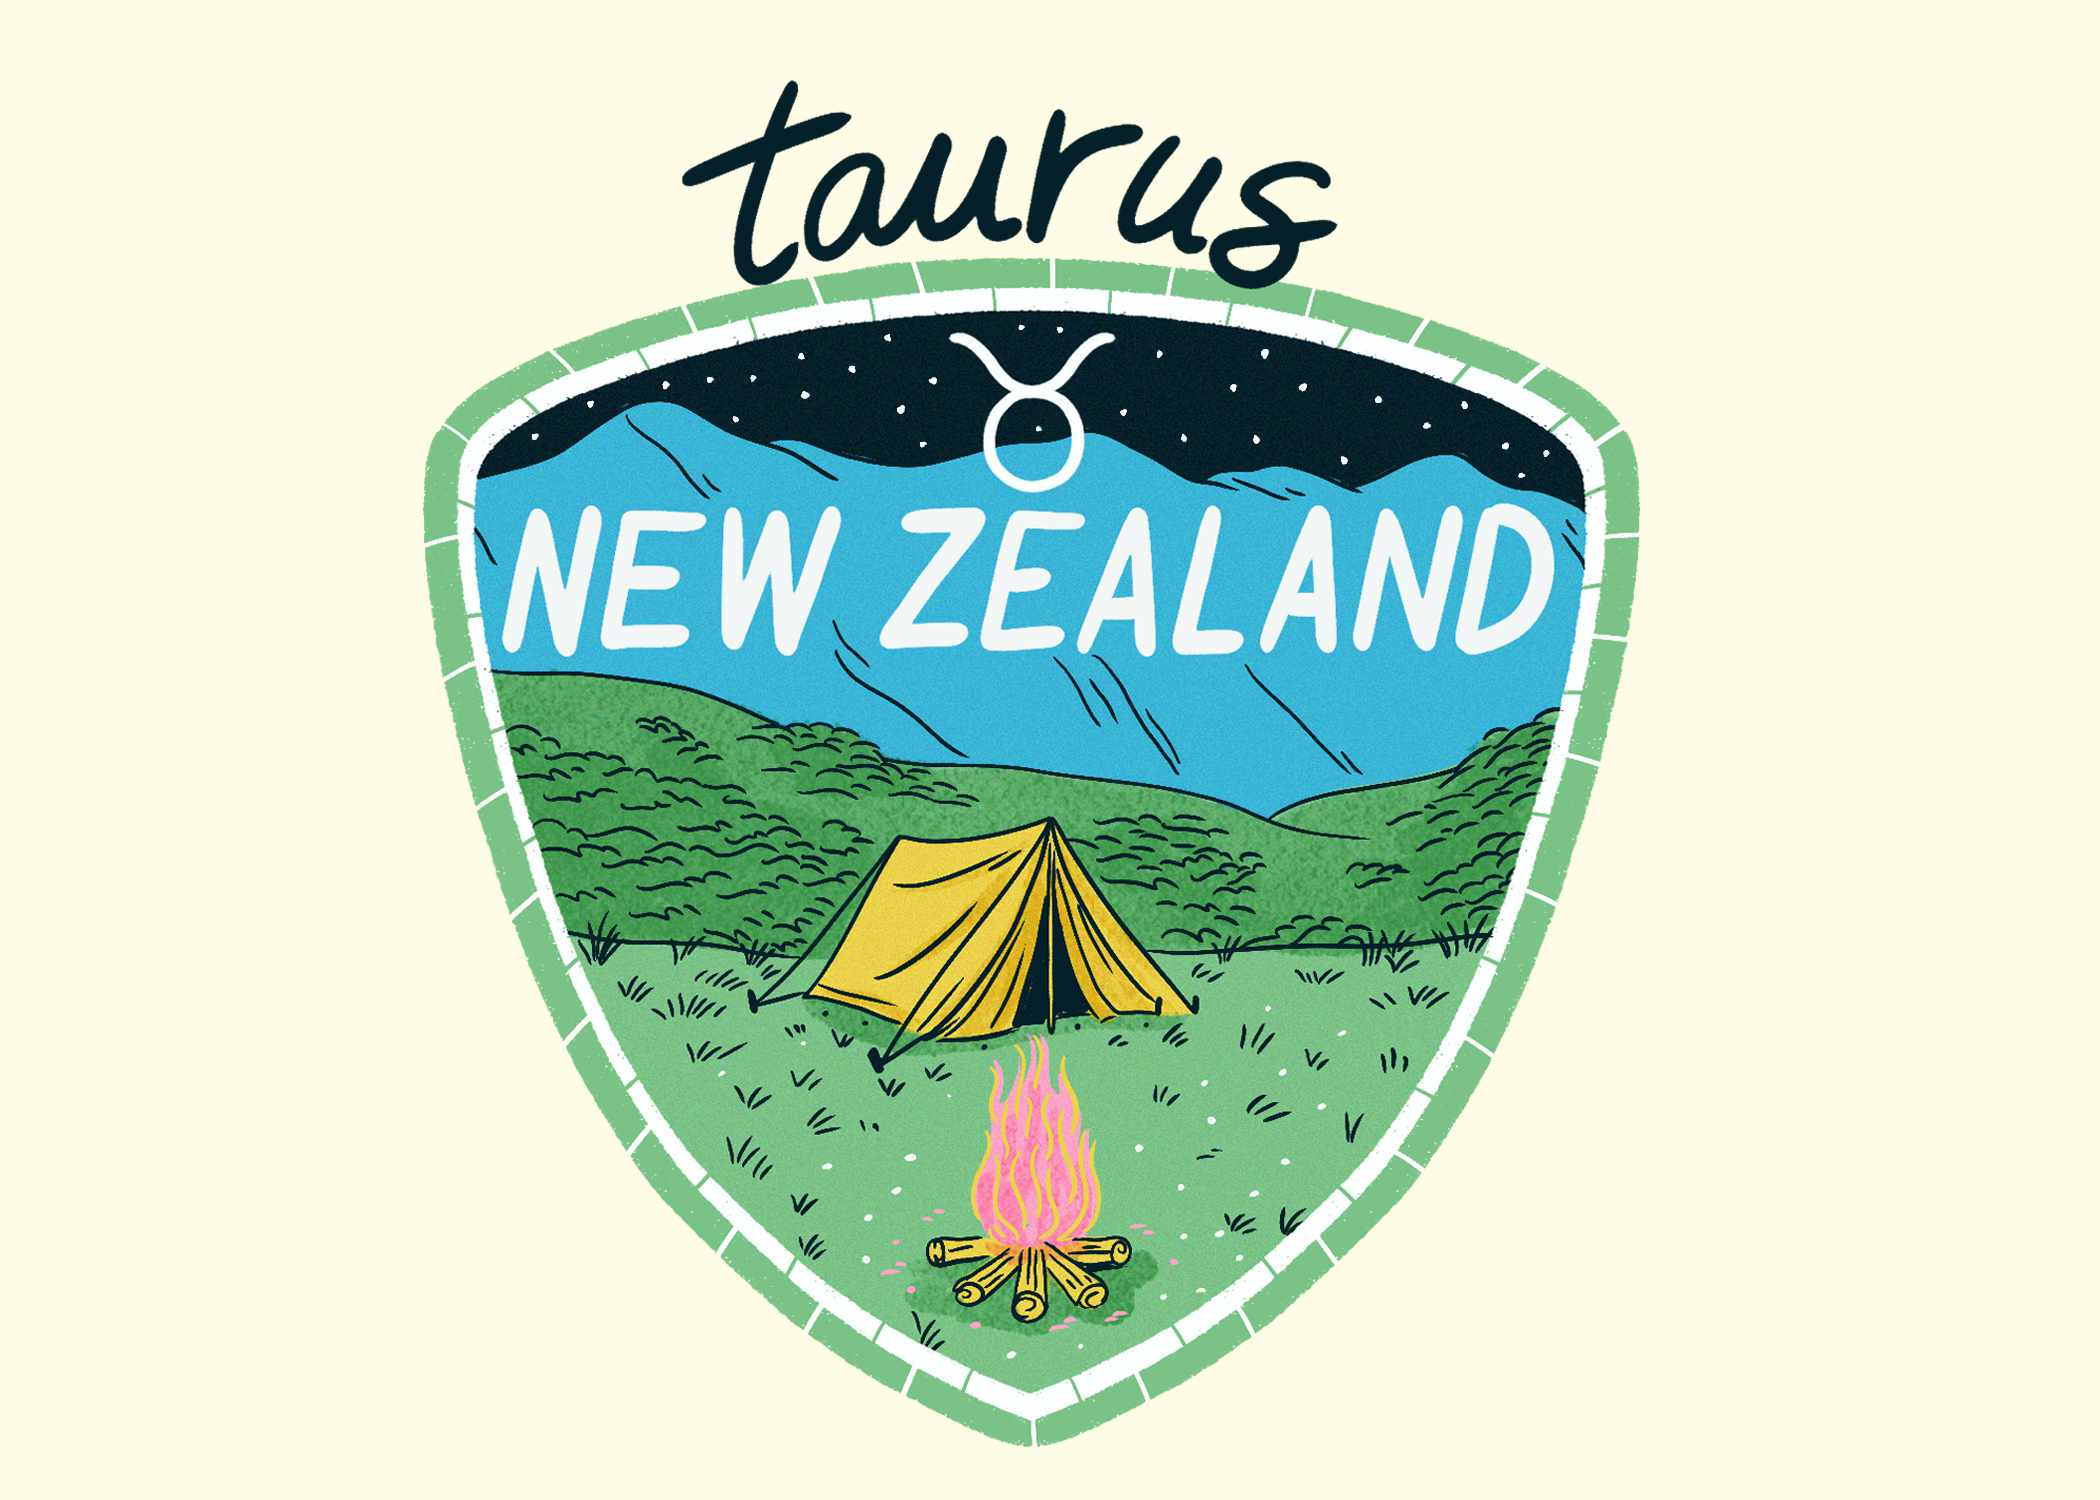 An illustration of New Zealand for Taurus